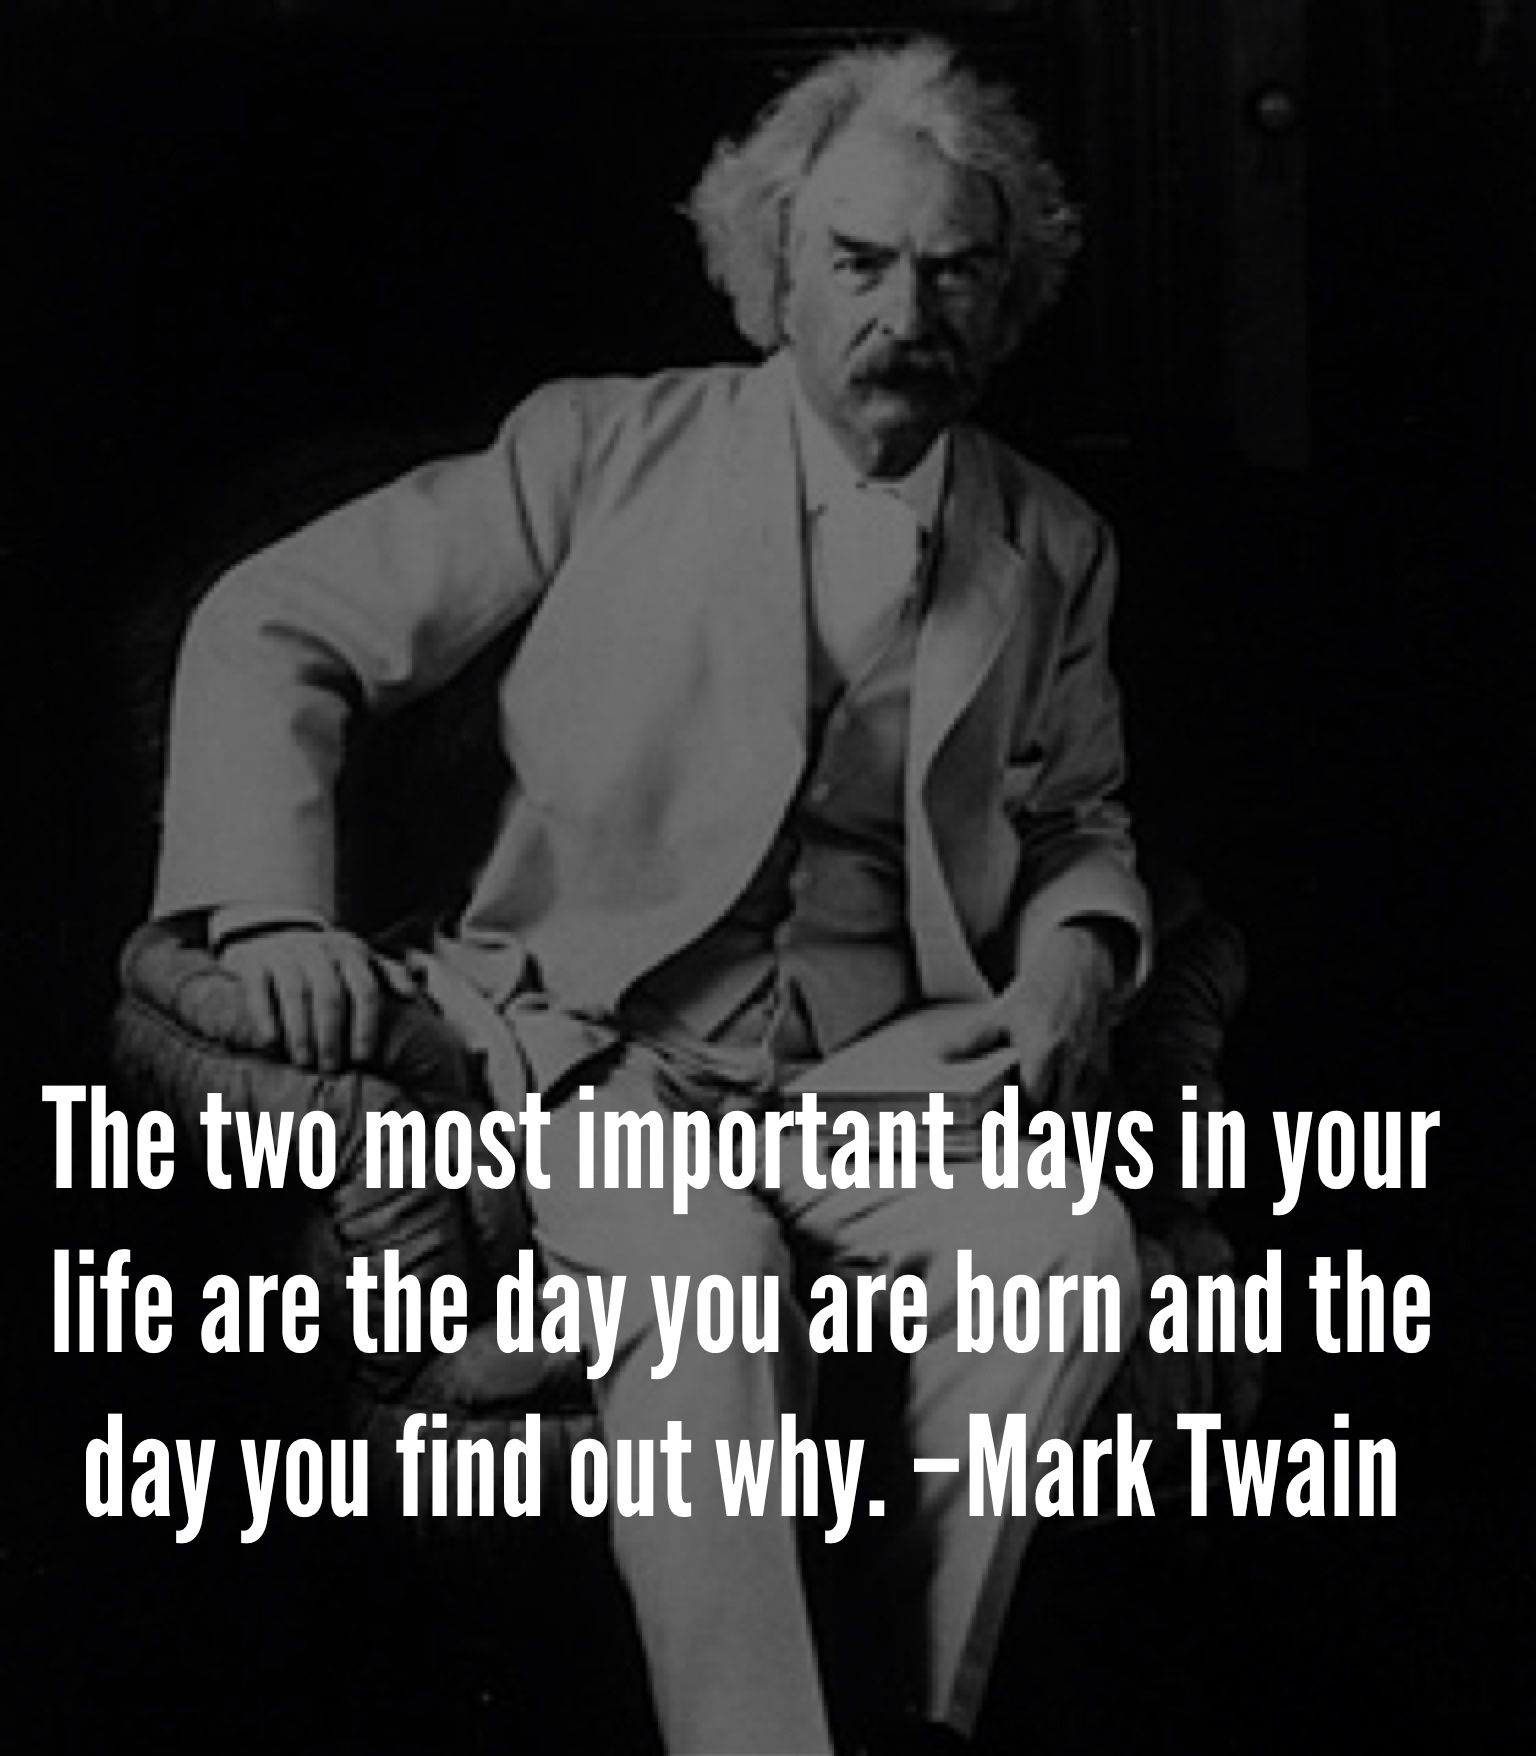 Mark Twain on the two most important days of your life ...